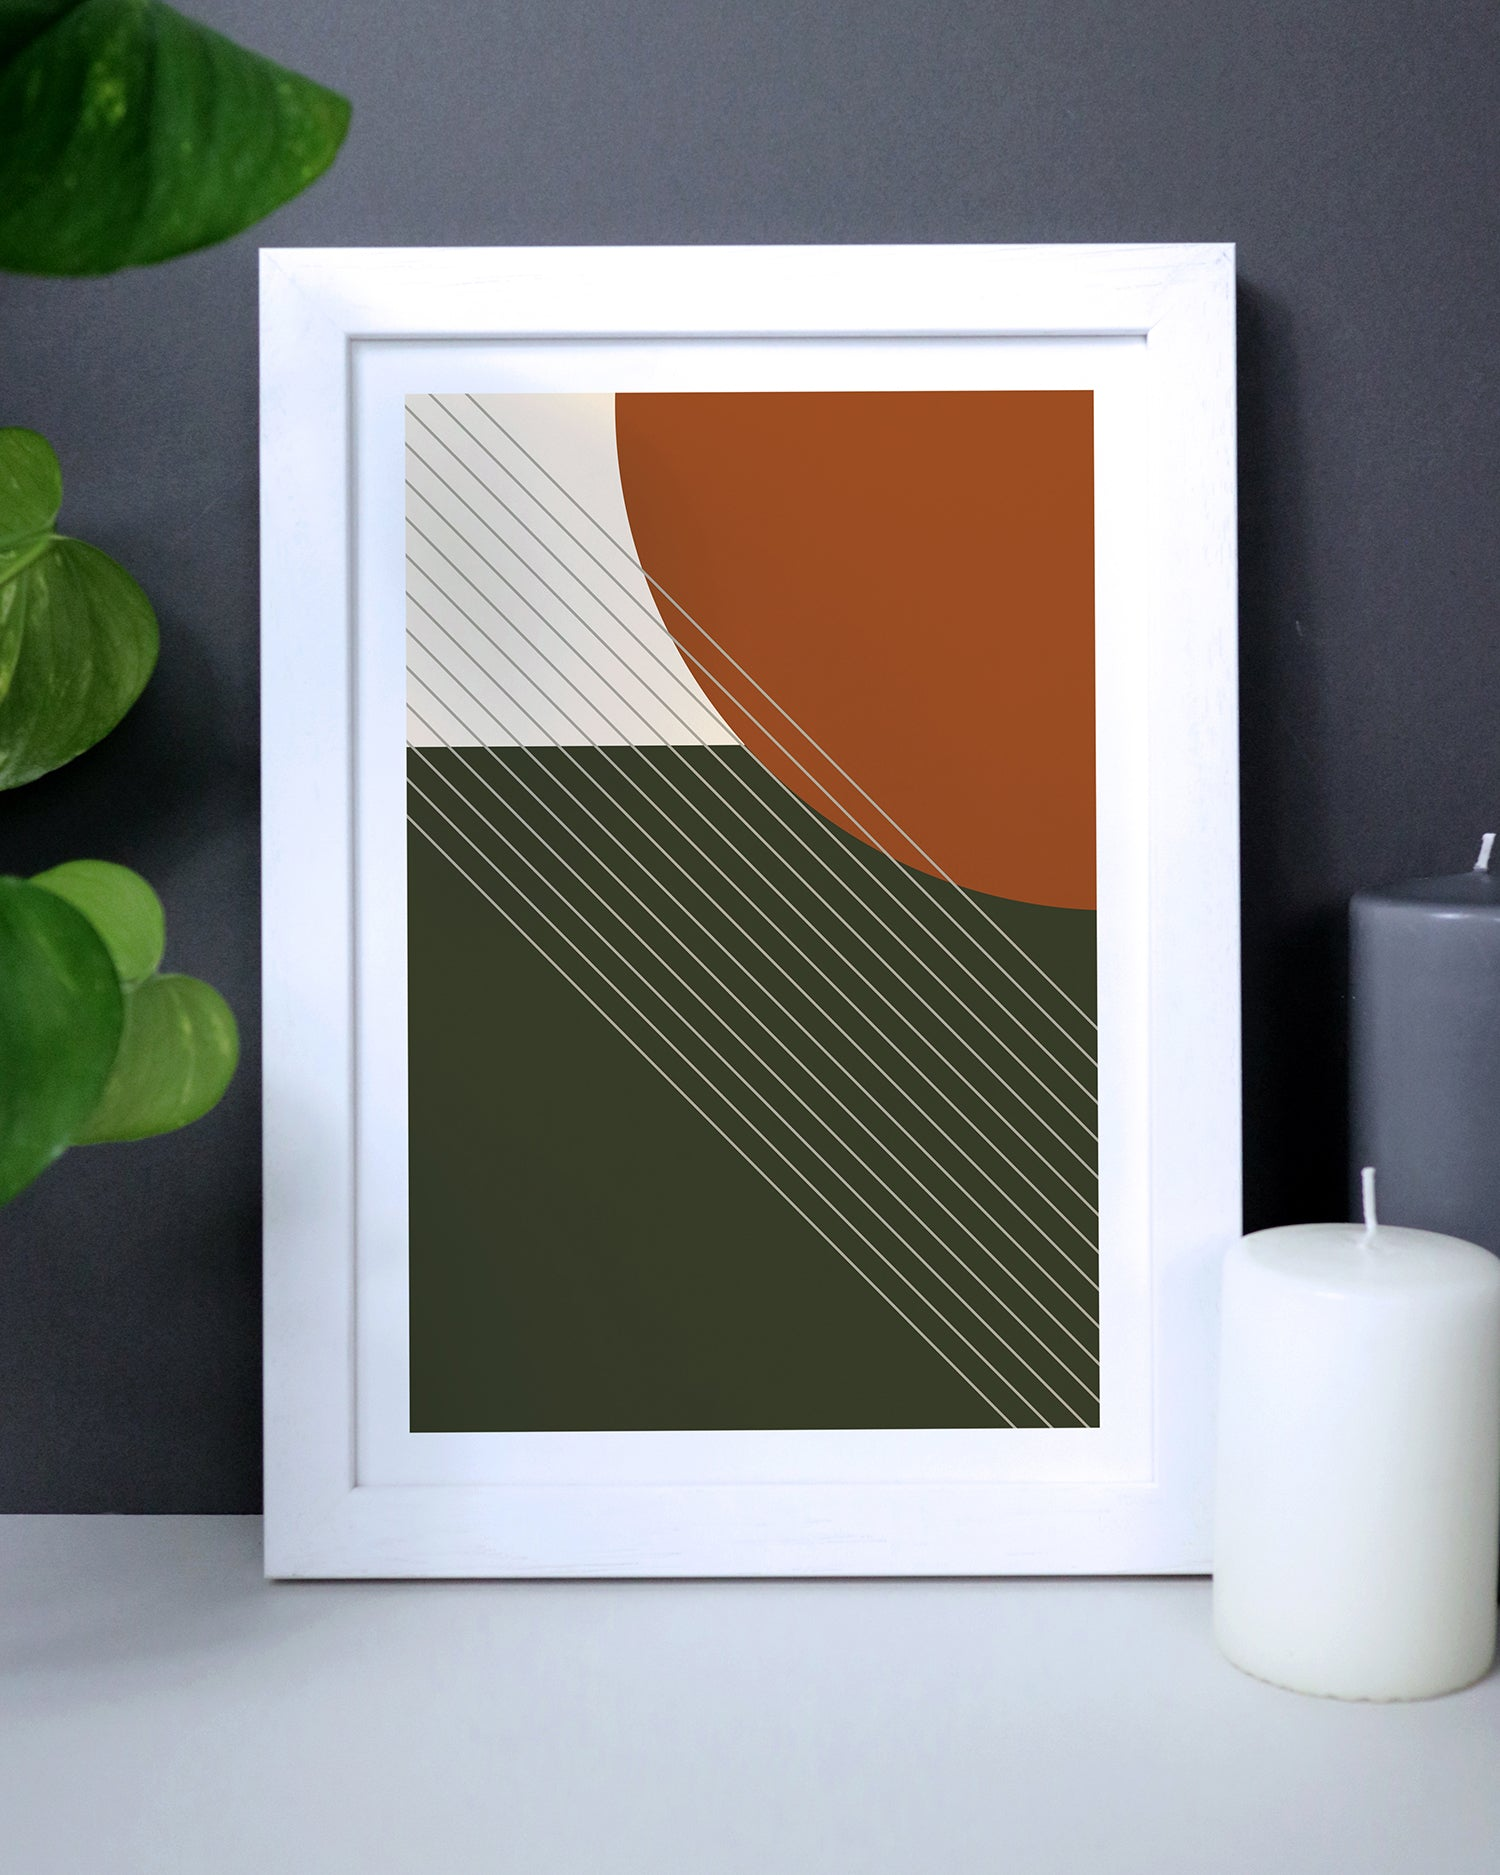 Green And Orange Geometric Shapes Print